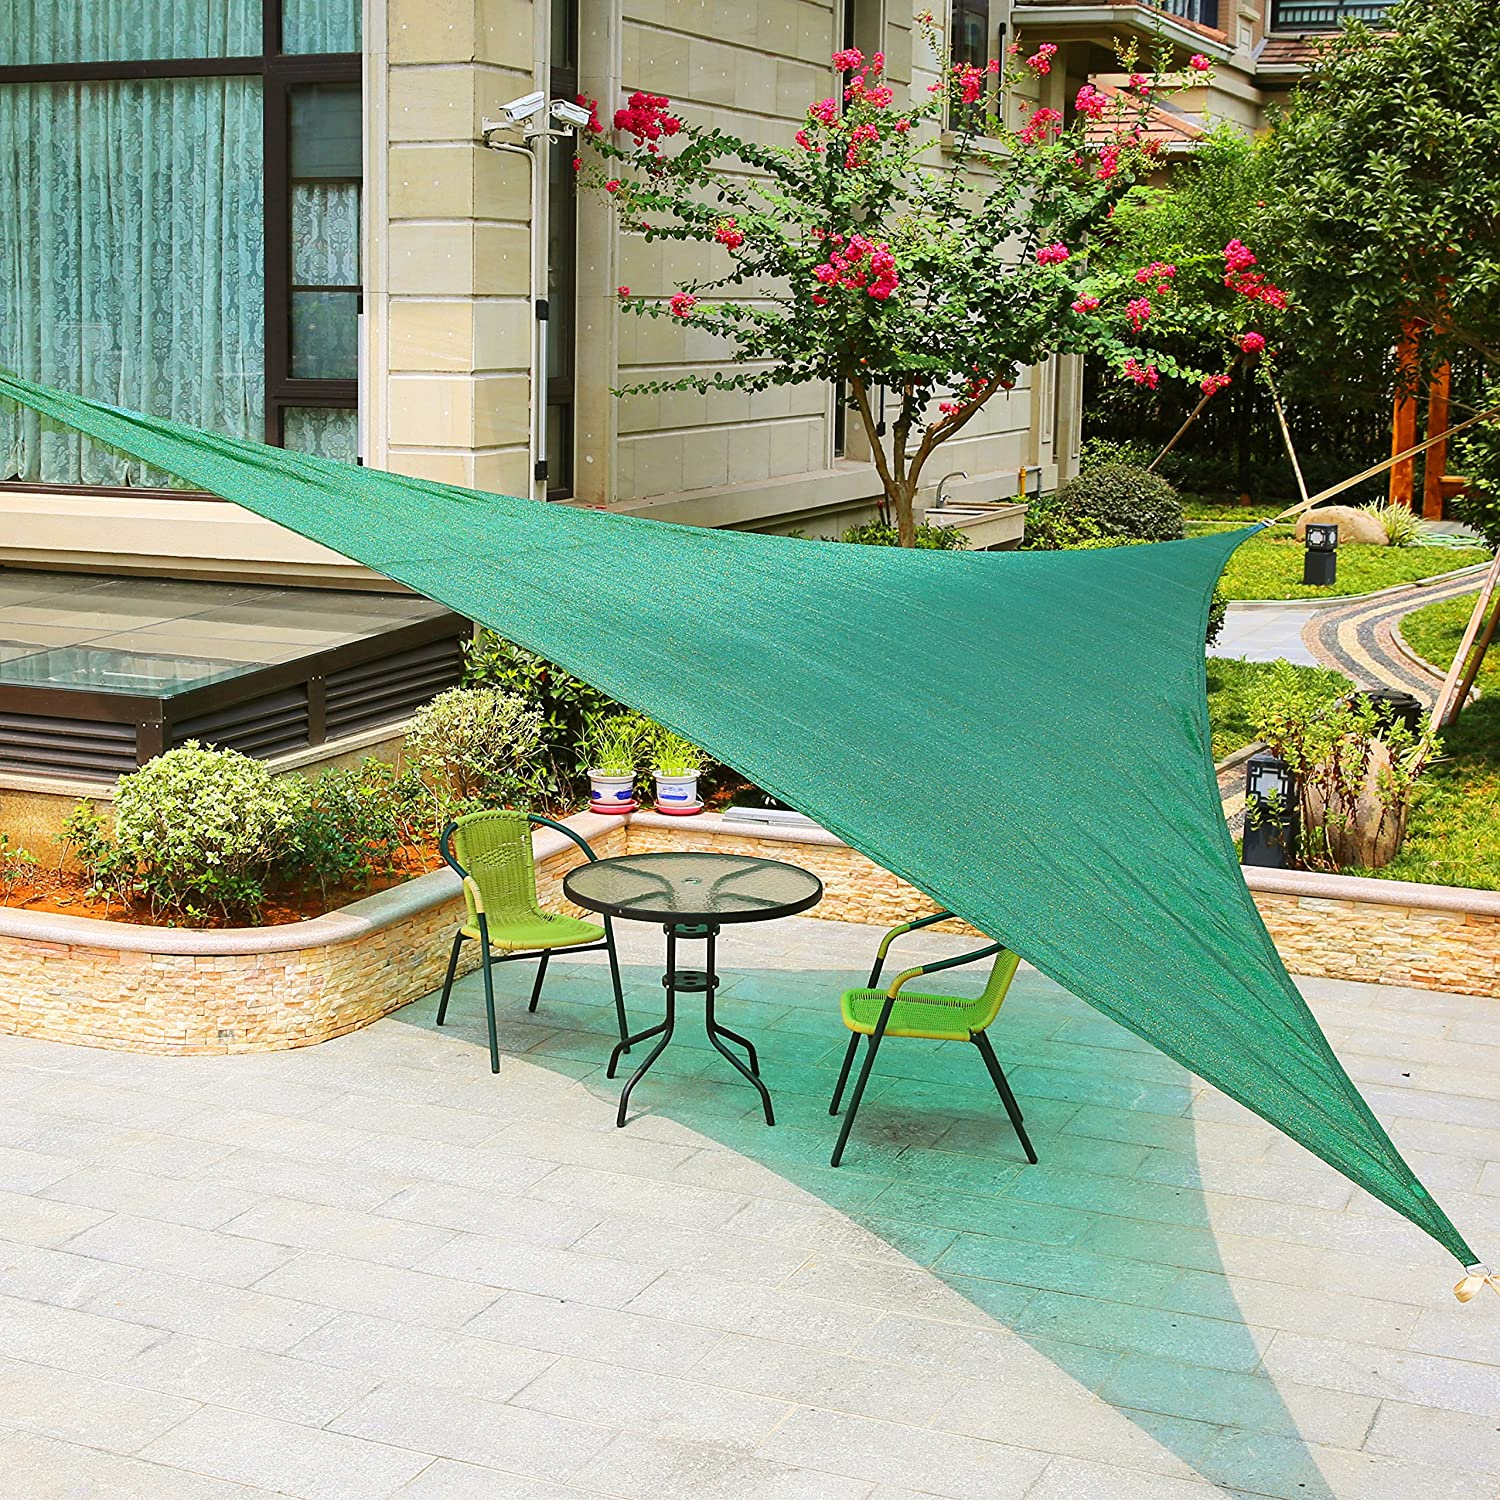 LyShade 12 x 12 x 17 Right Triangle Sun Shade Sail Canopy with Stainless Steel Hardware Kit Sand – UV Block for Patio and Outdoor